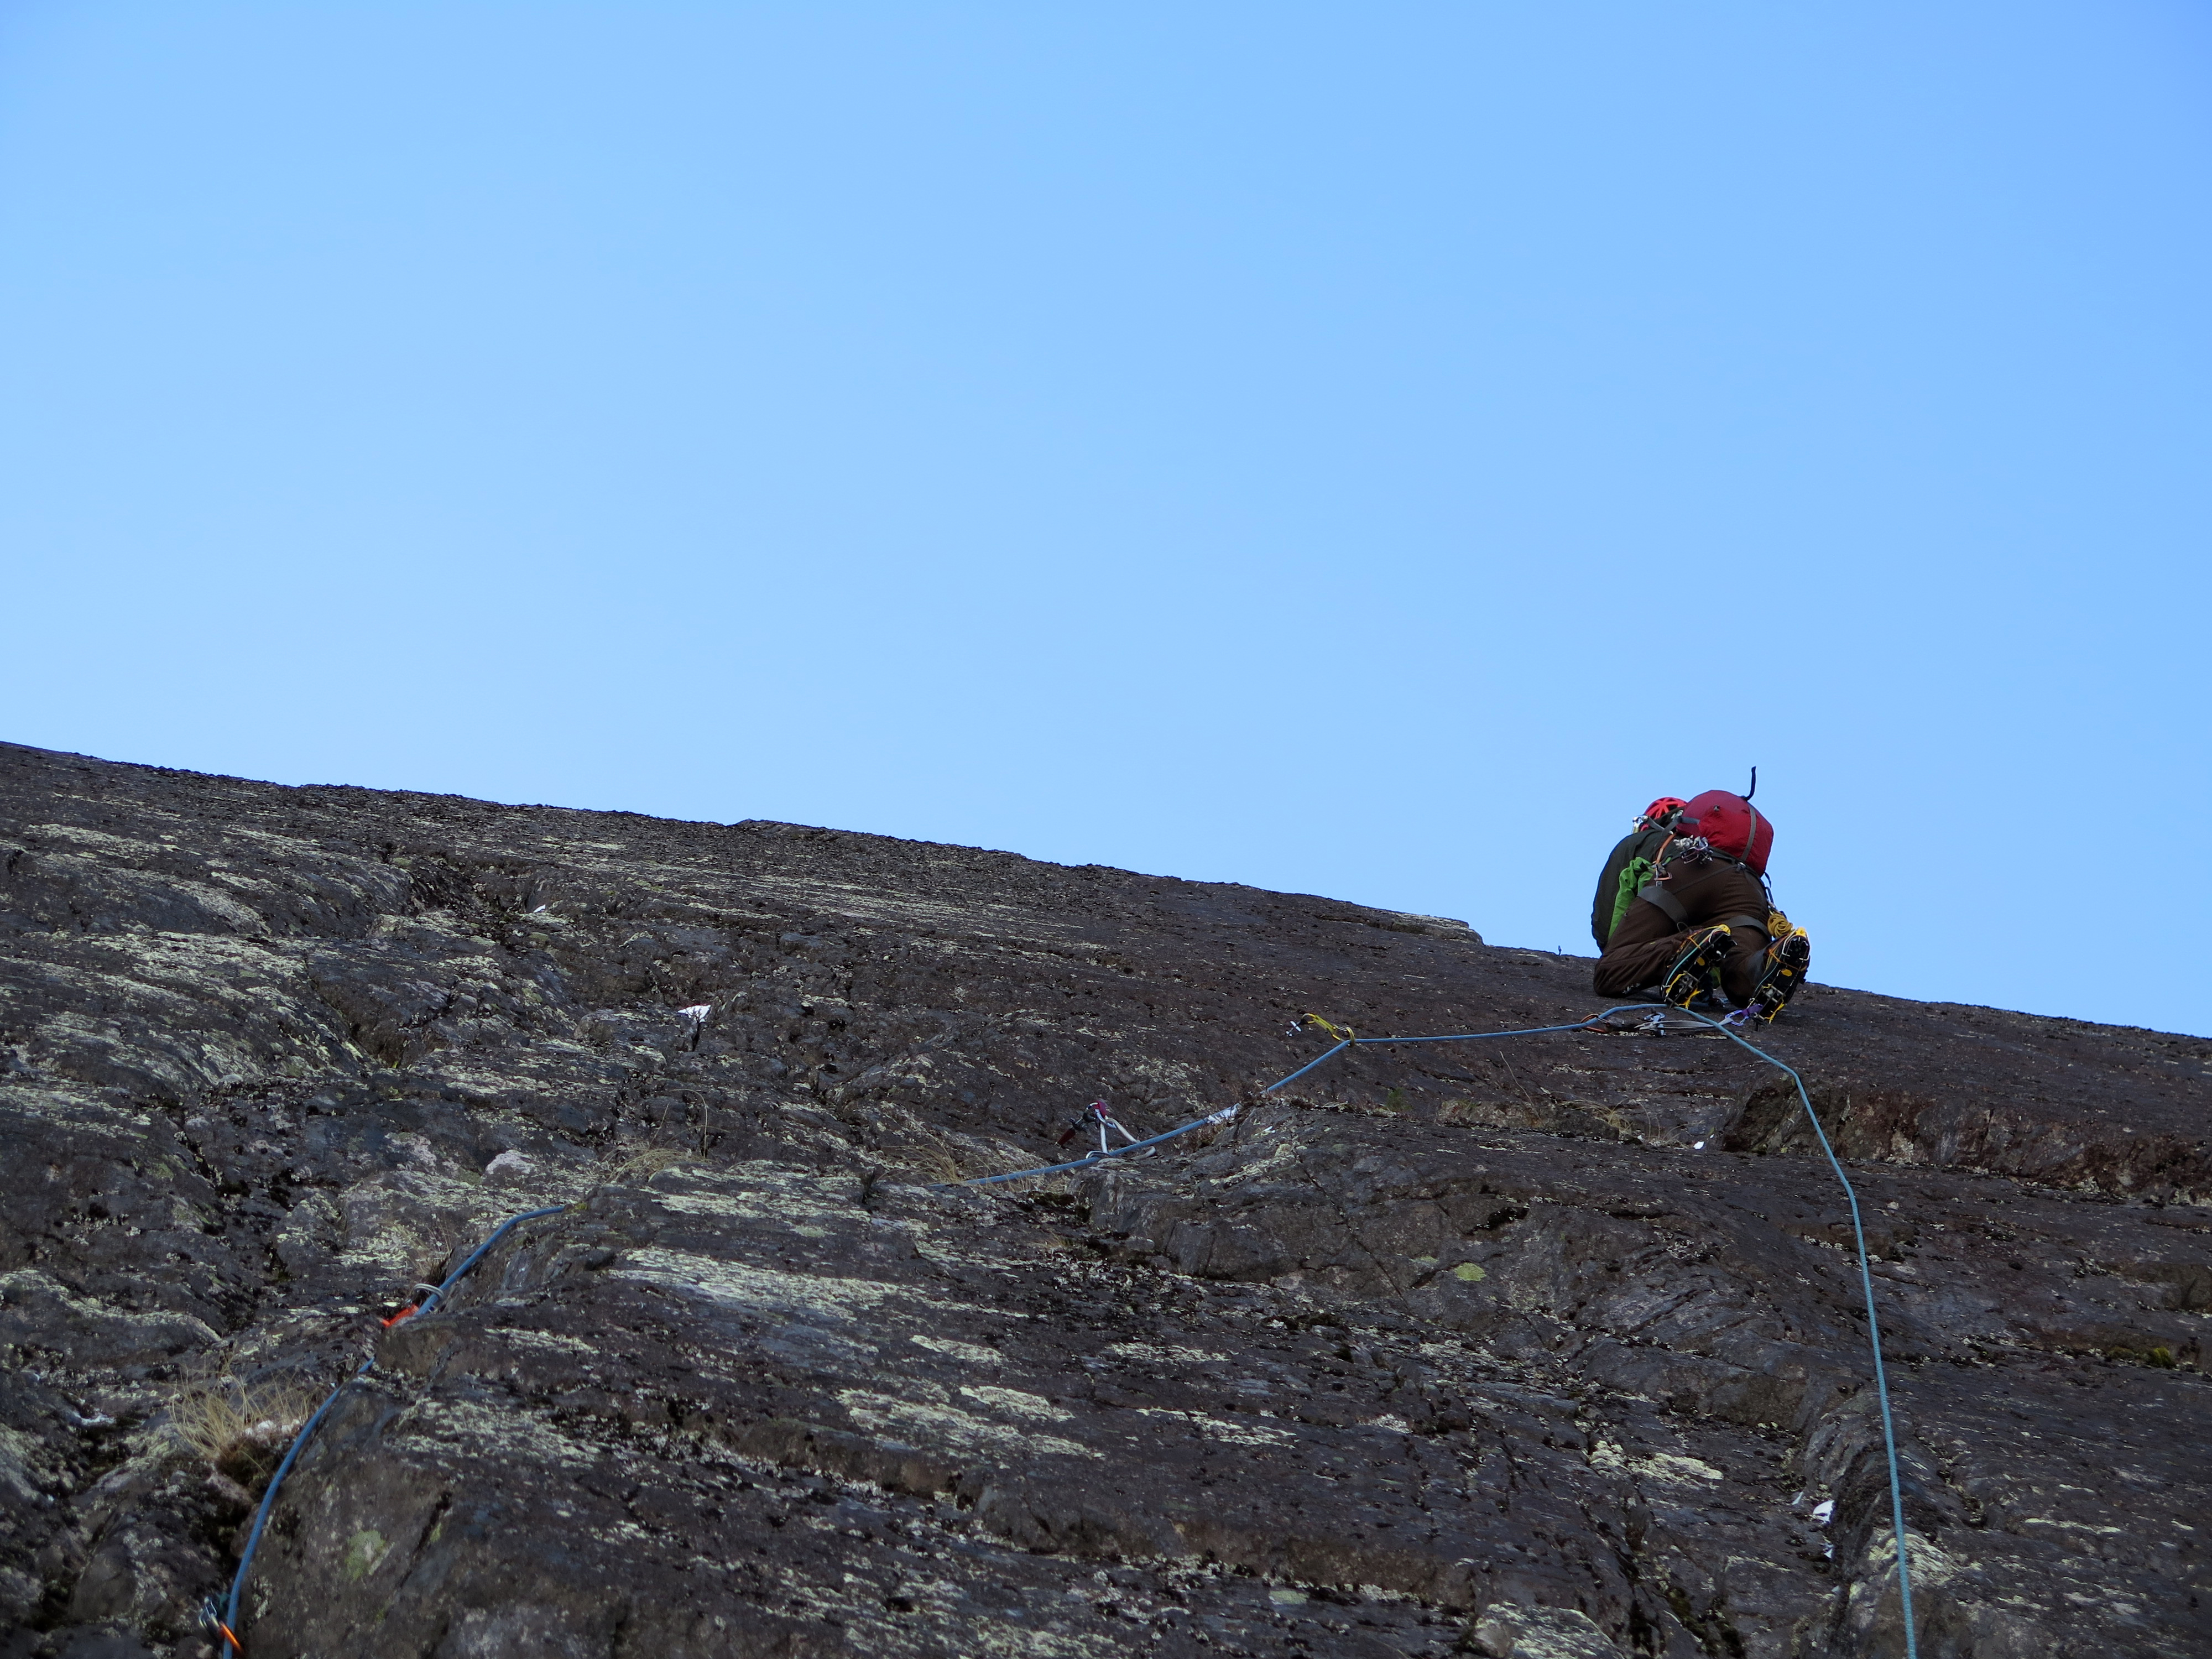 Frank Bédard making his way up the second pitch (M6 C1).